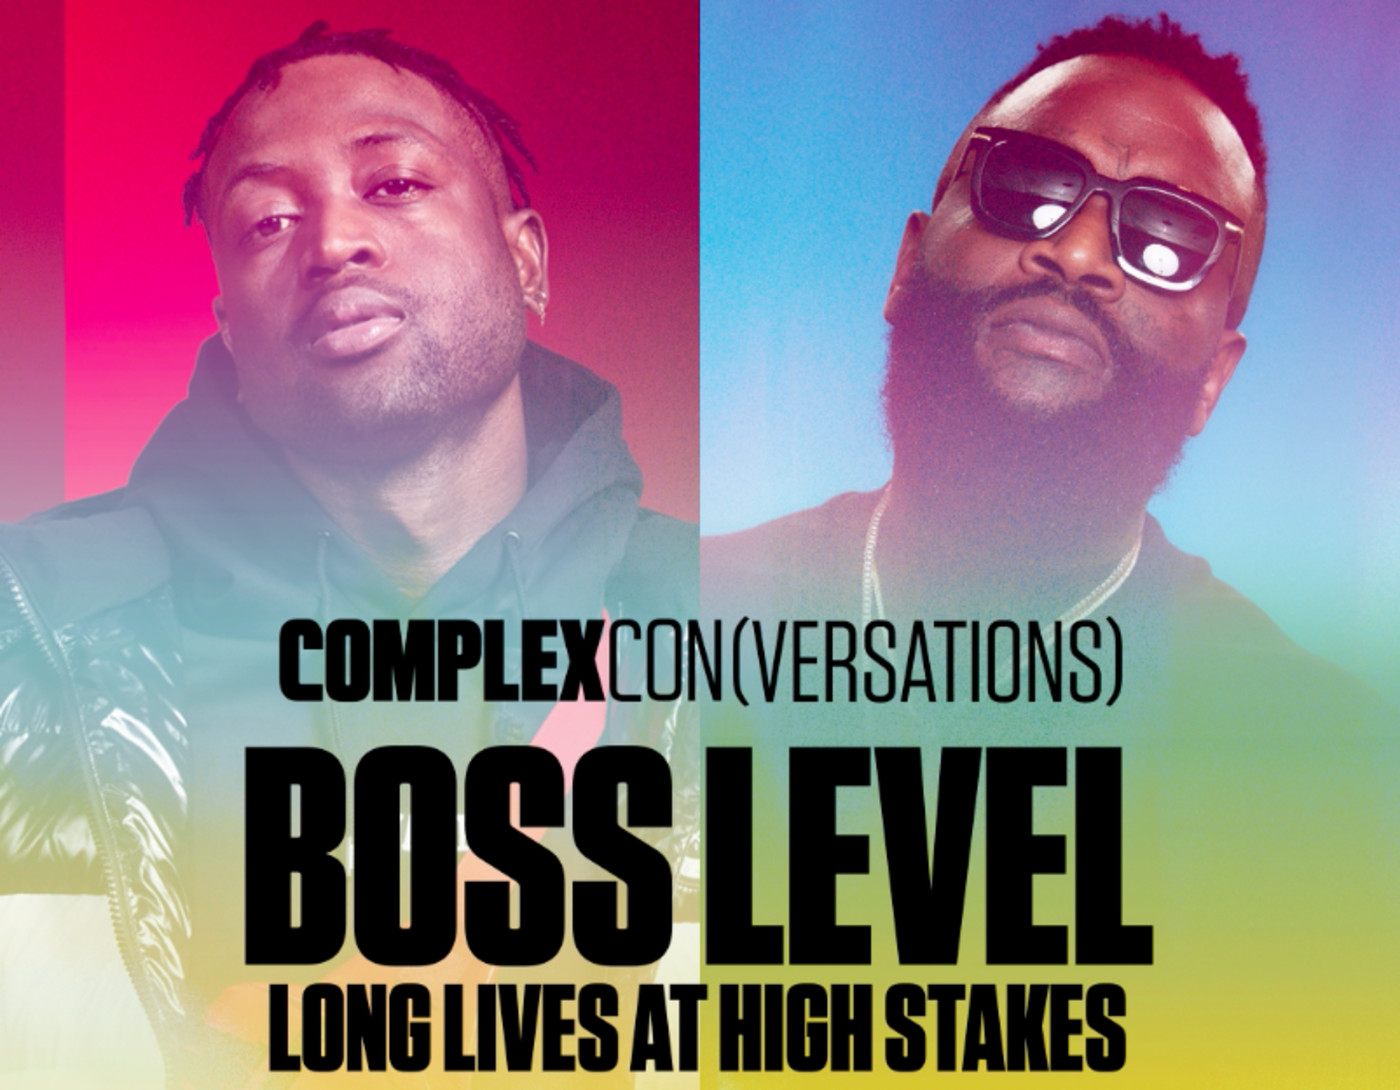 Boss Level: Long Lives at High Stakes